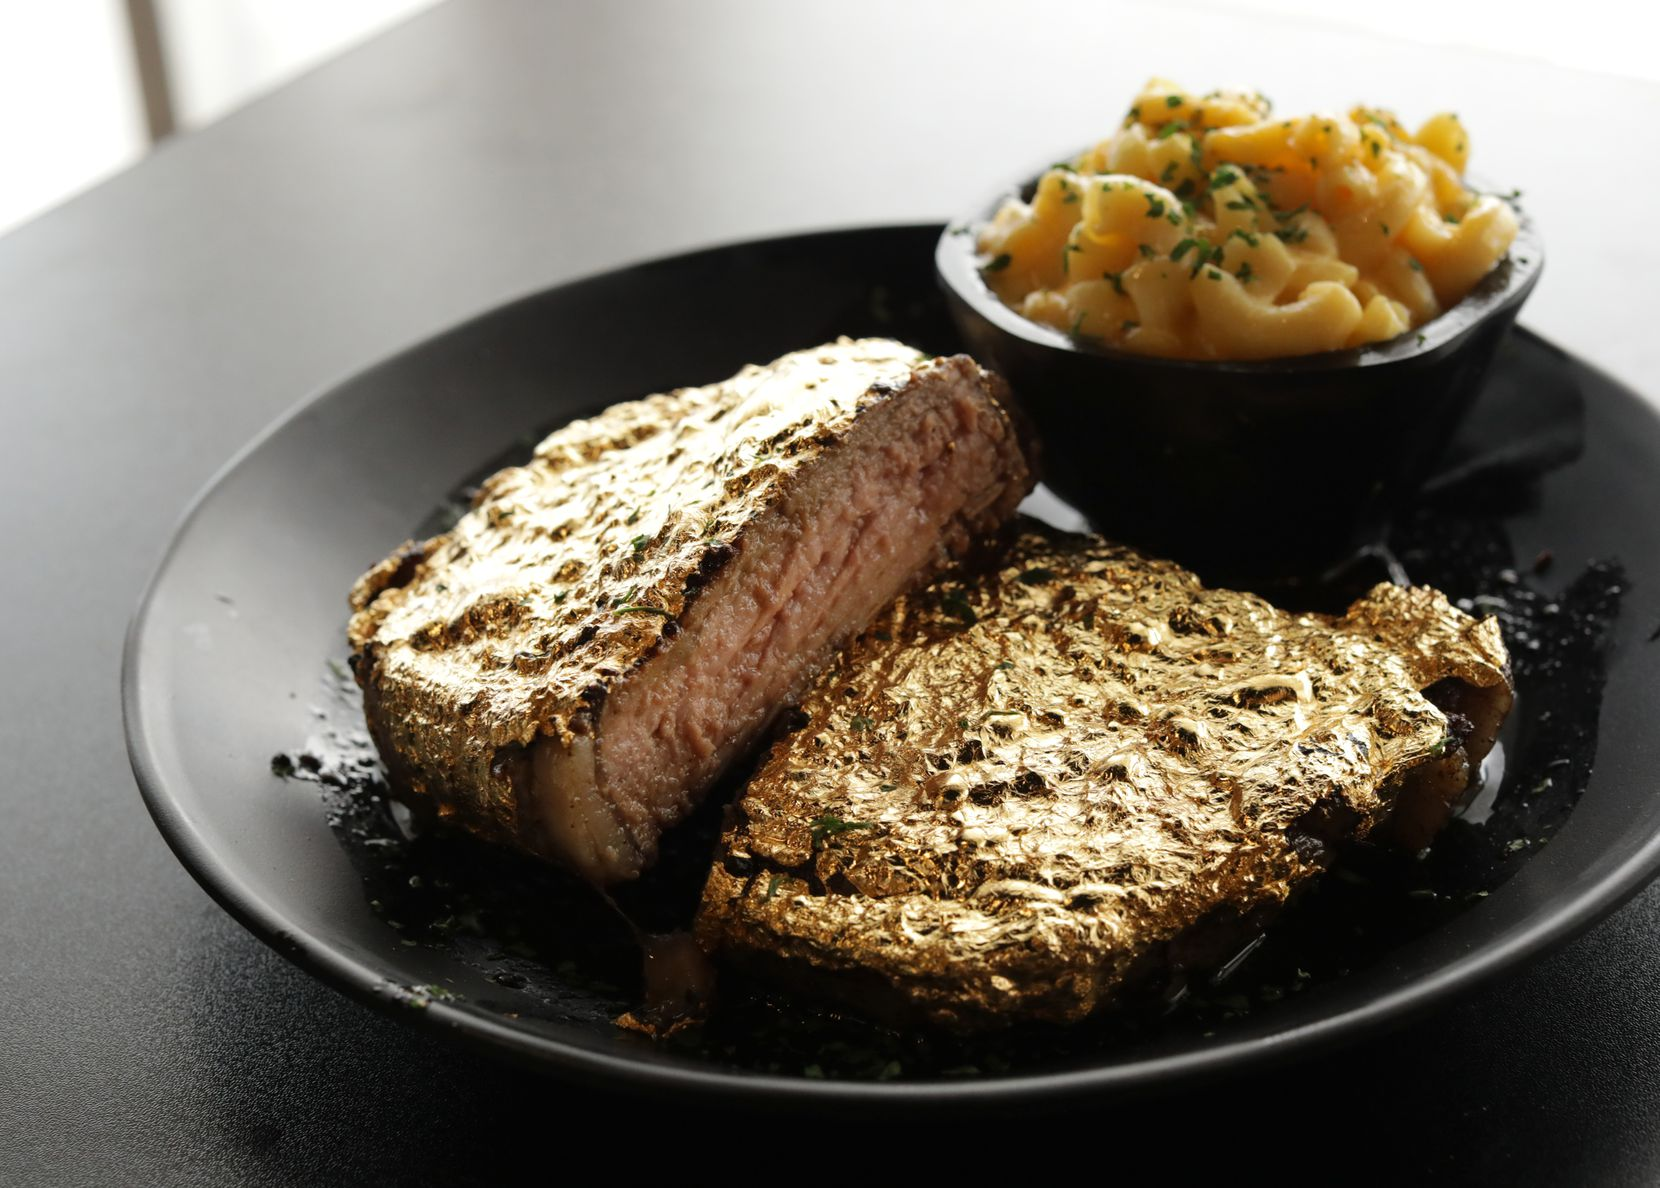 The Saint's 24ct gold steak photographed at the new Bells Sweet Factory in Plano, TX, on Oct. 1, 2021.  (Jason Janik/Special Contributor)